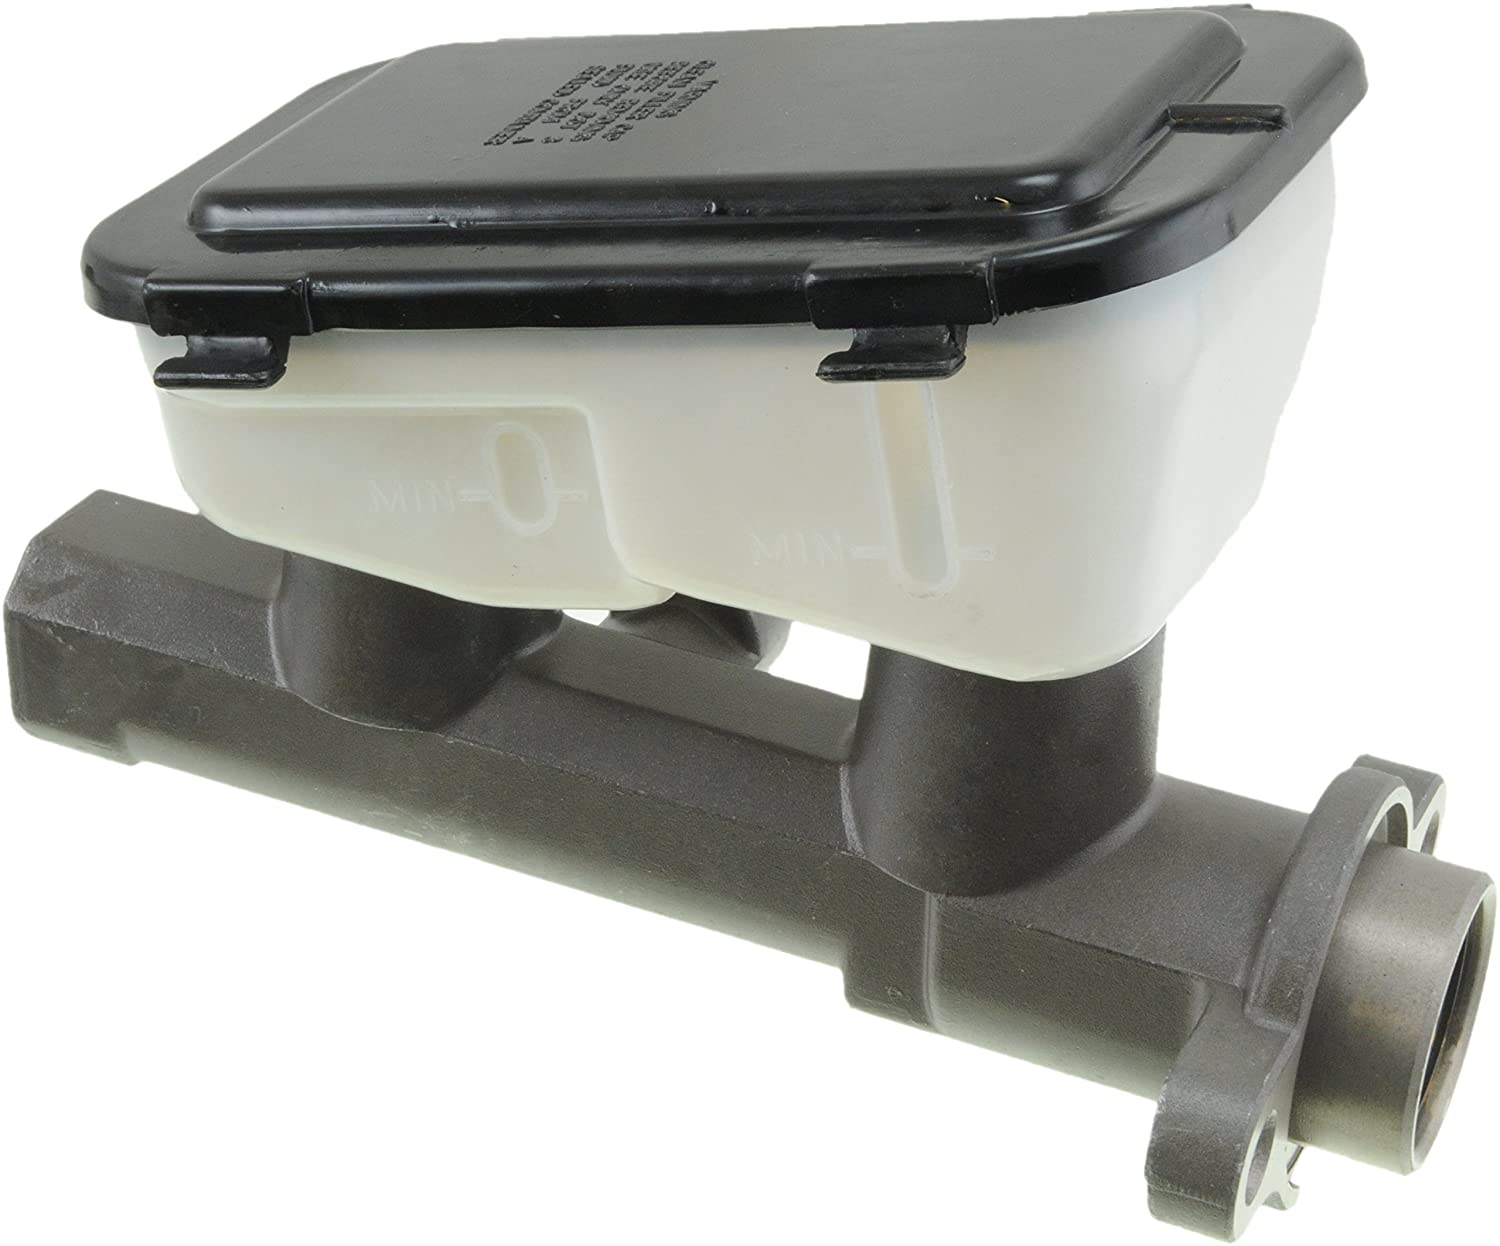 HFP-389-AP1 Aprilia Scarabeo 125 200 250 300 Sport City Cube 2006-2010 Motorcycle Fuel Pump with Installation Kit Quantum Fuel Systems